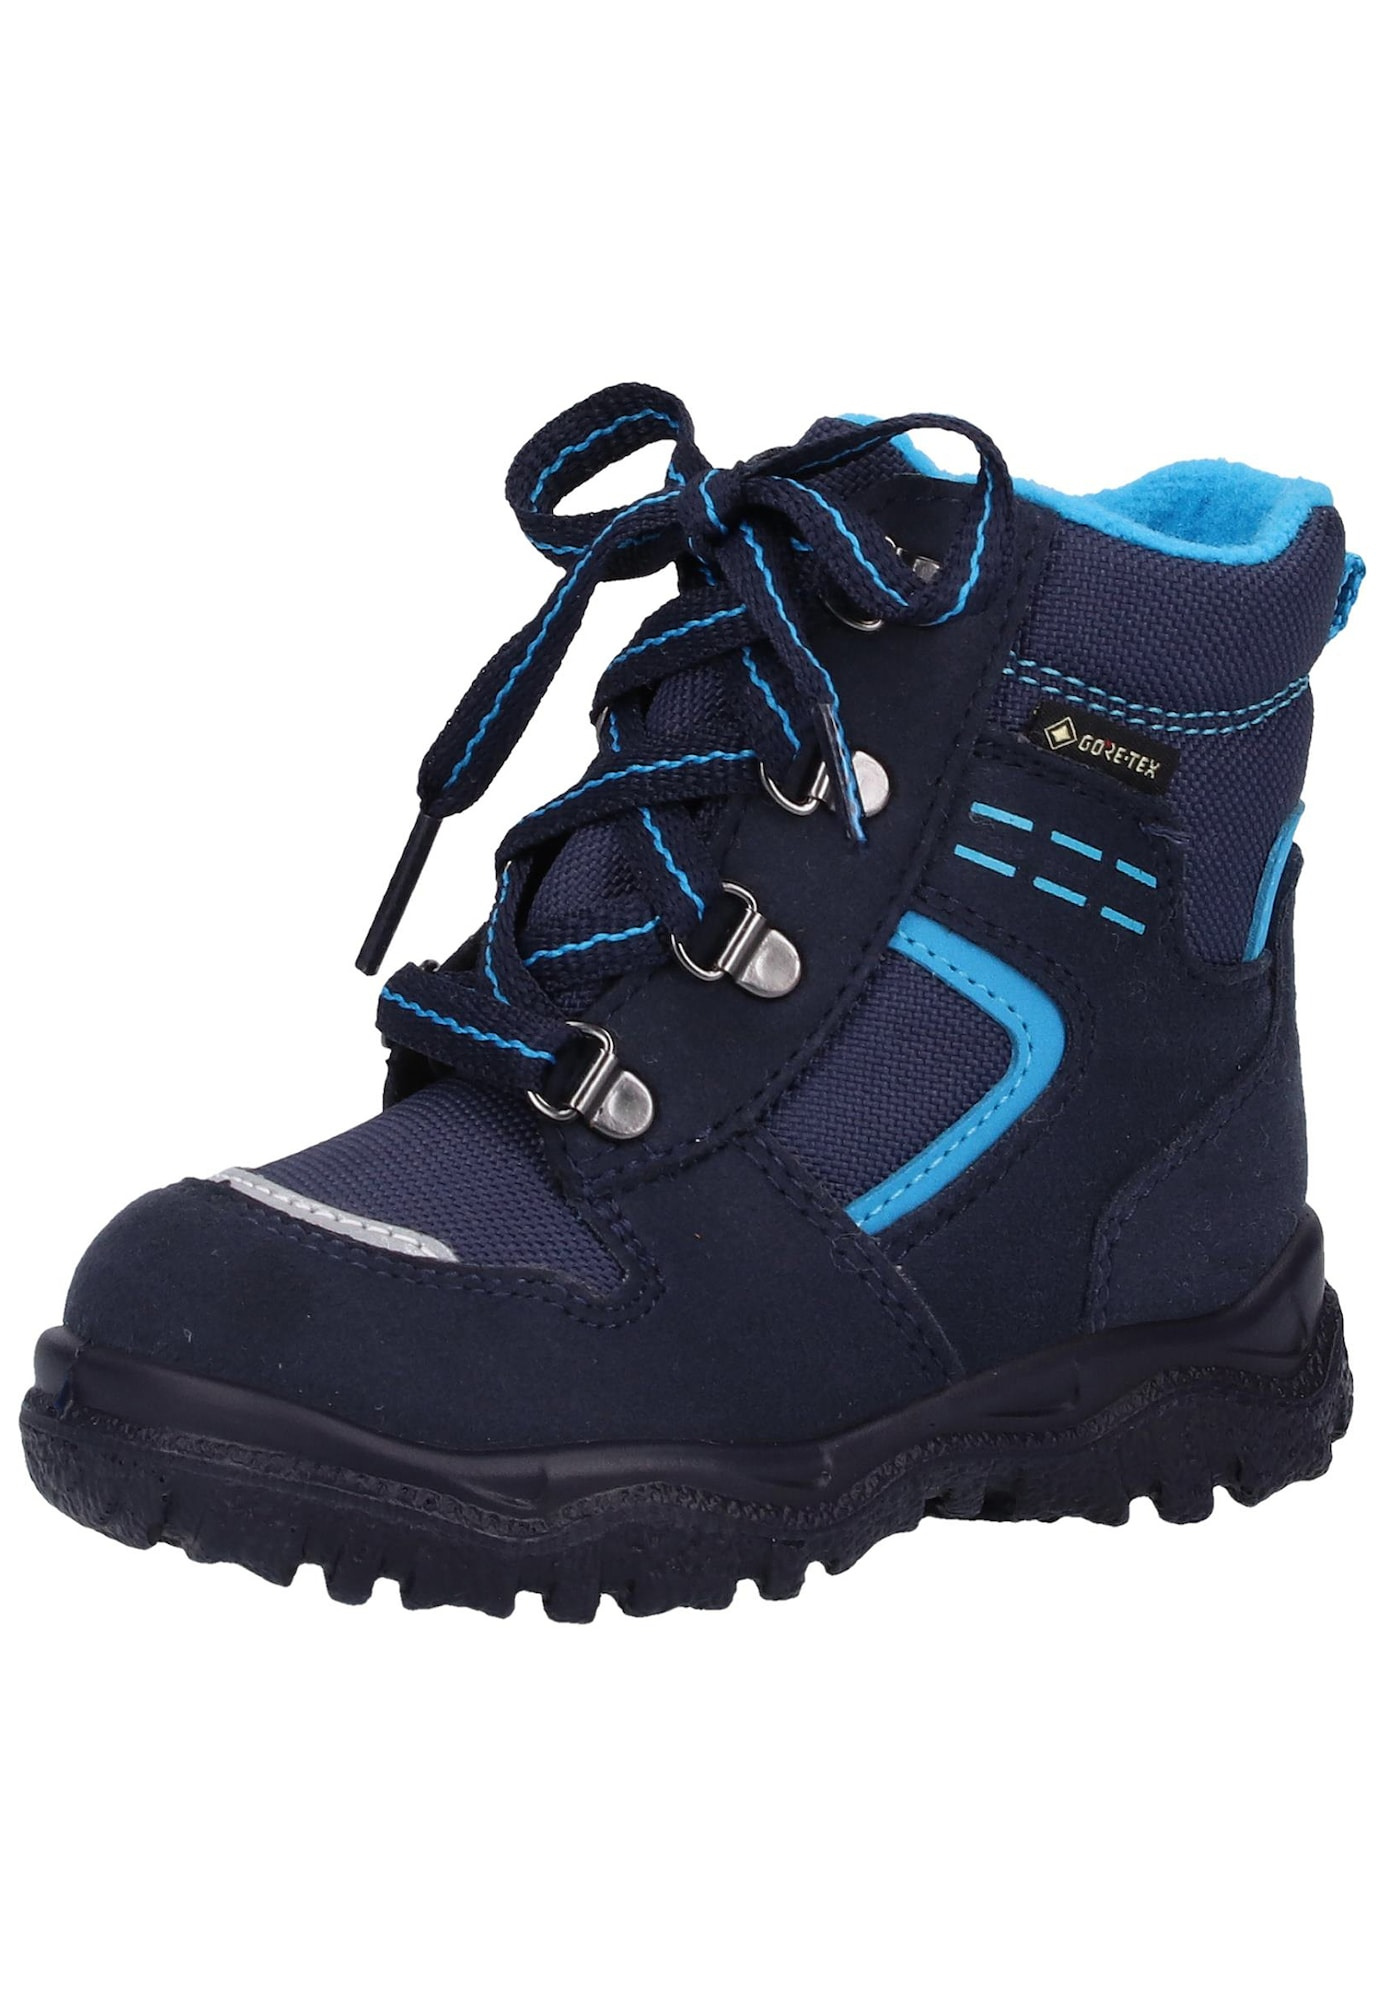 Miniboysschuhe - Stiefel 'HUSKY1' - Onlineshop ABOUT YOU